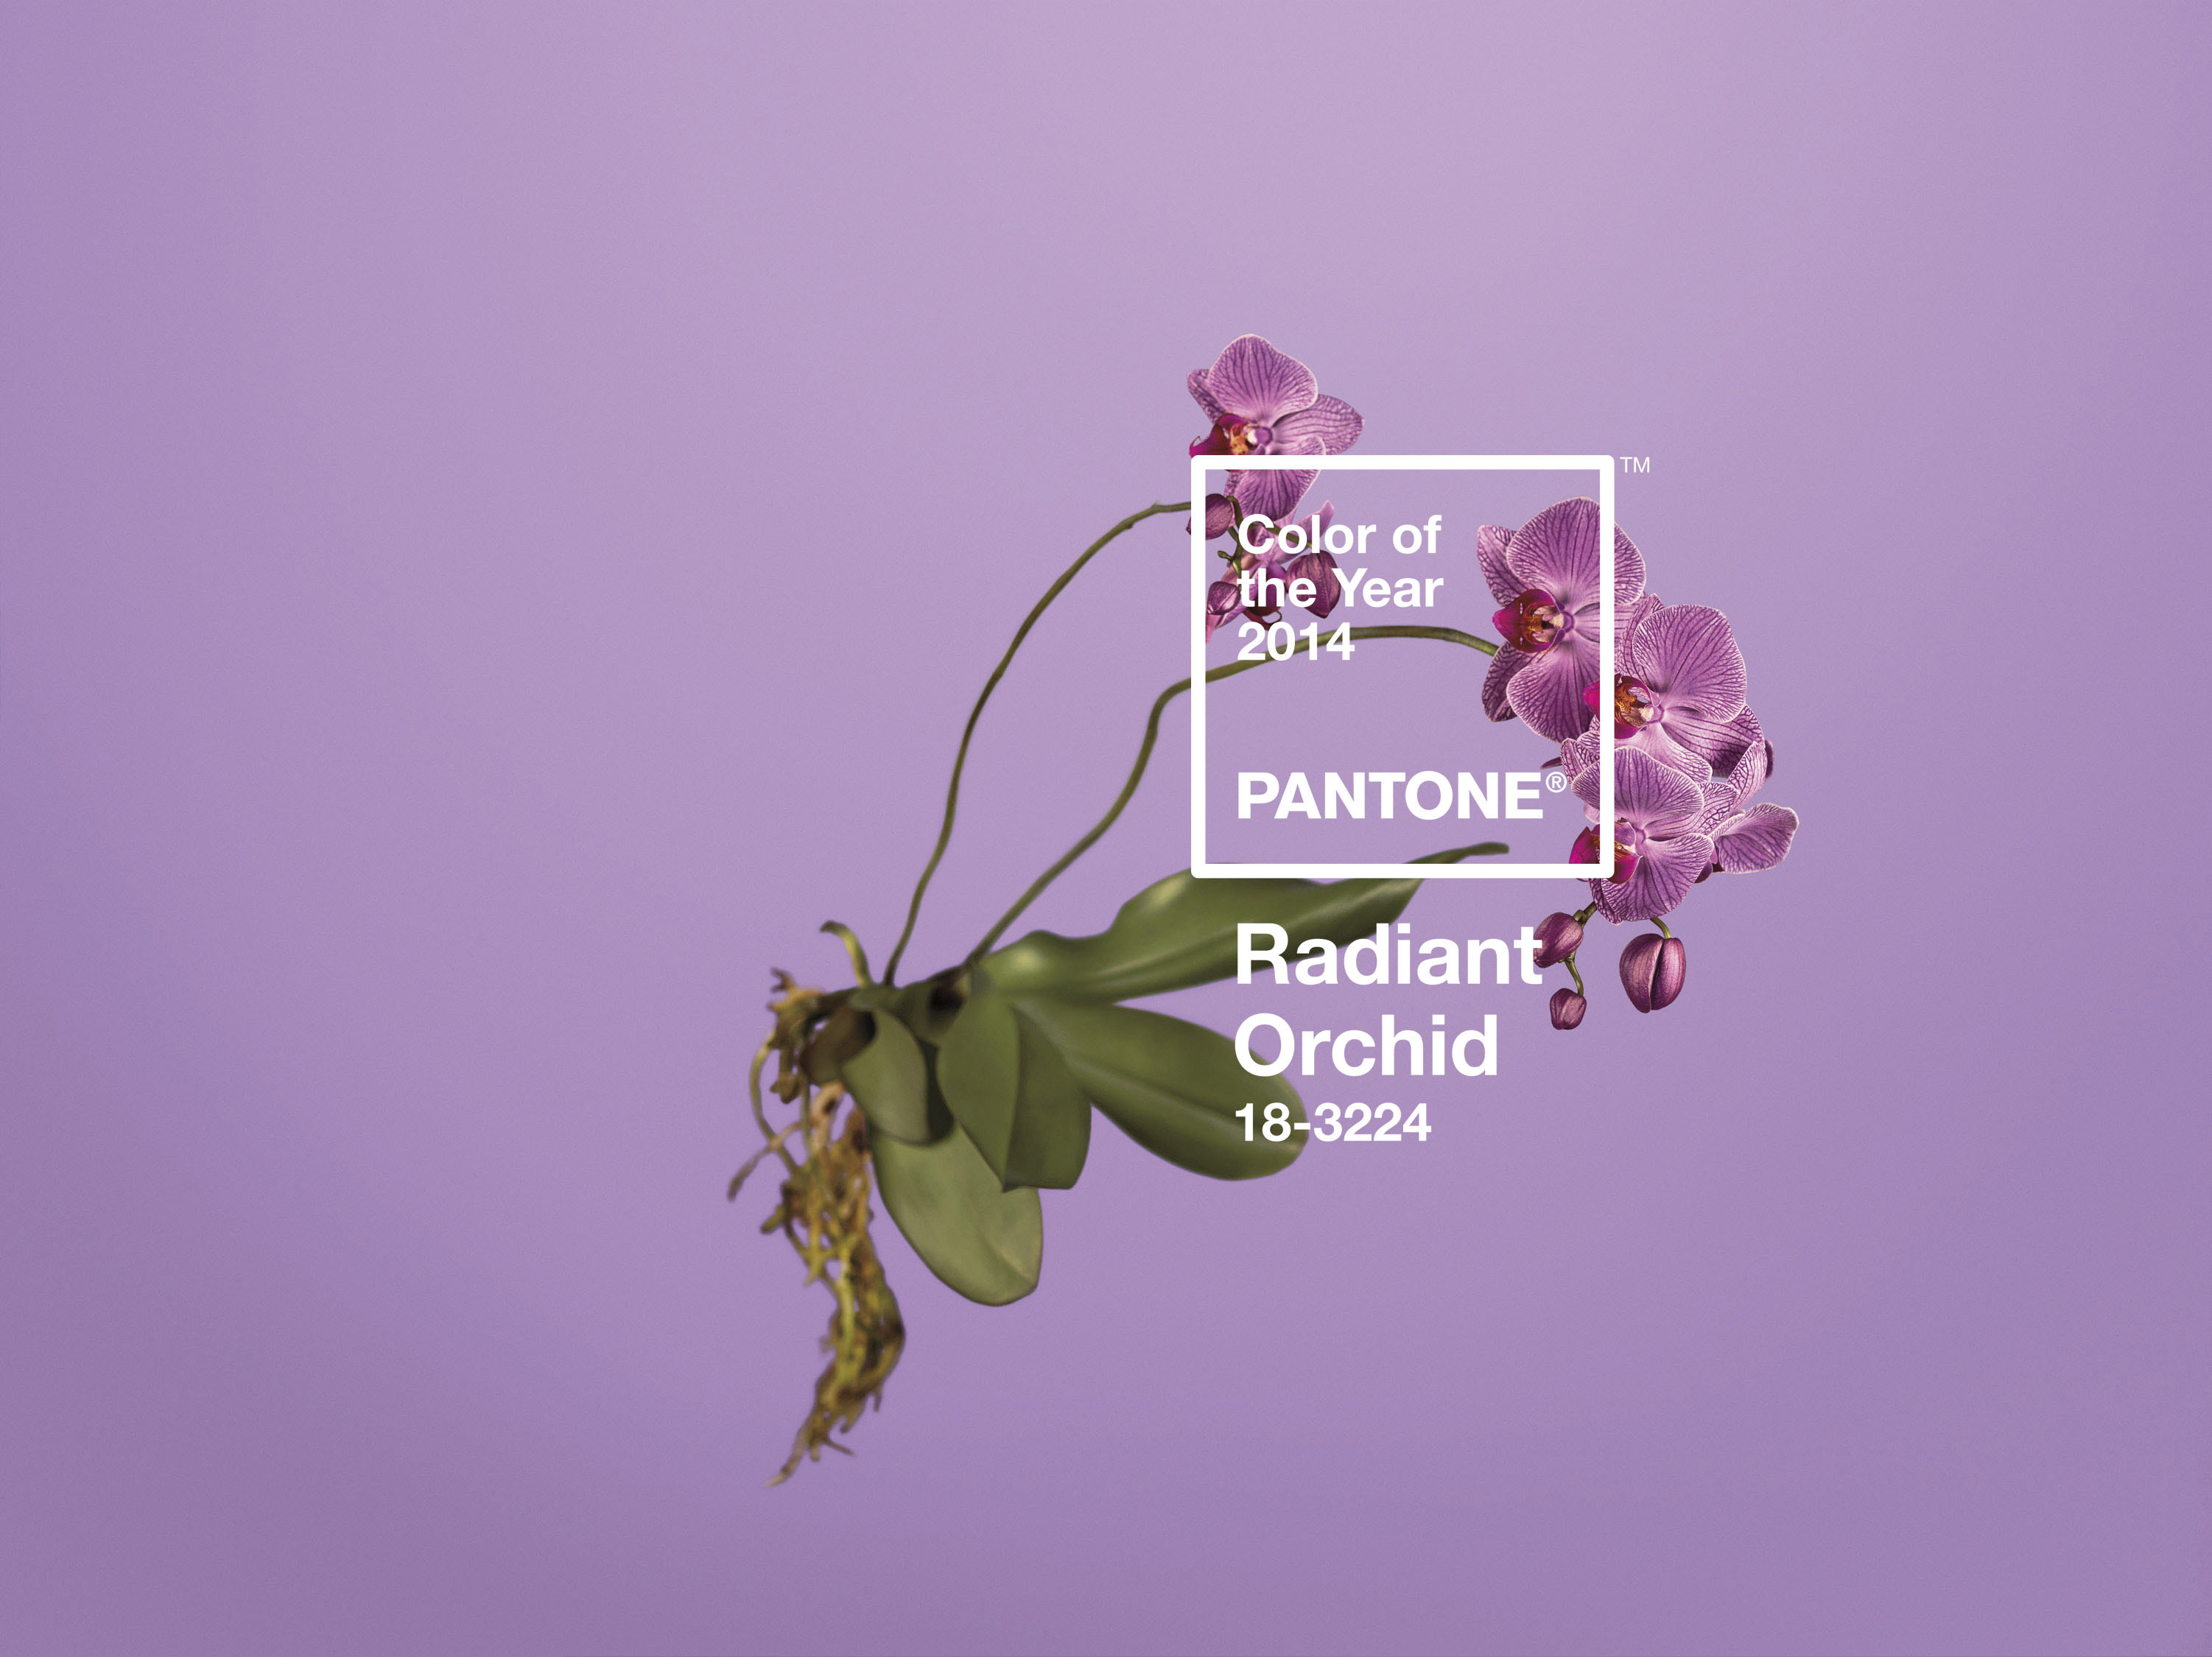 Radiant Orchid, Pantone's 2014 Color of the Year.